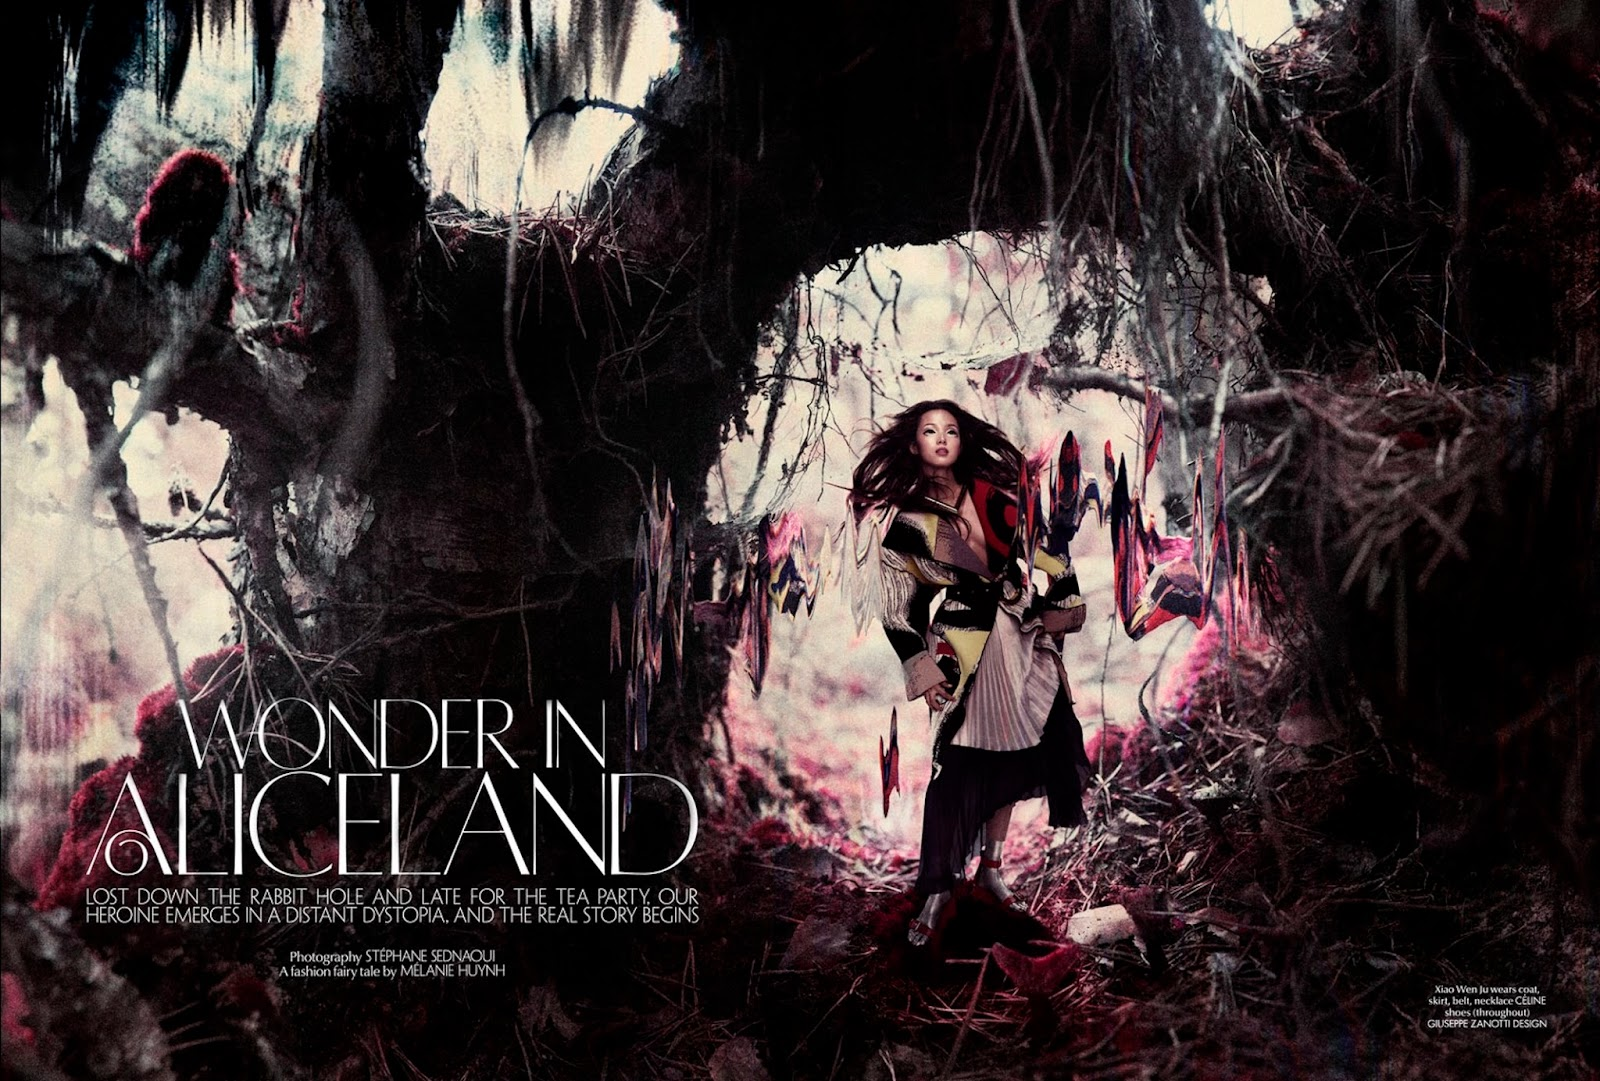 wonder in aliceland: xiao wen ju by stephane sednaoui for cr fashion book #4 spring/summer 2014